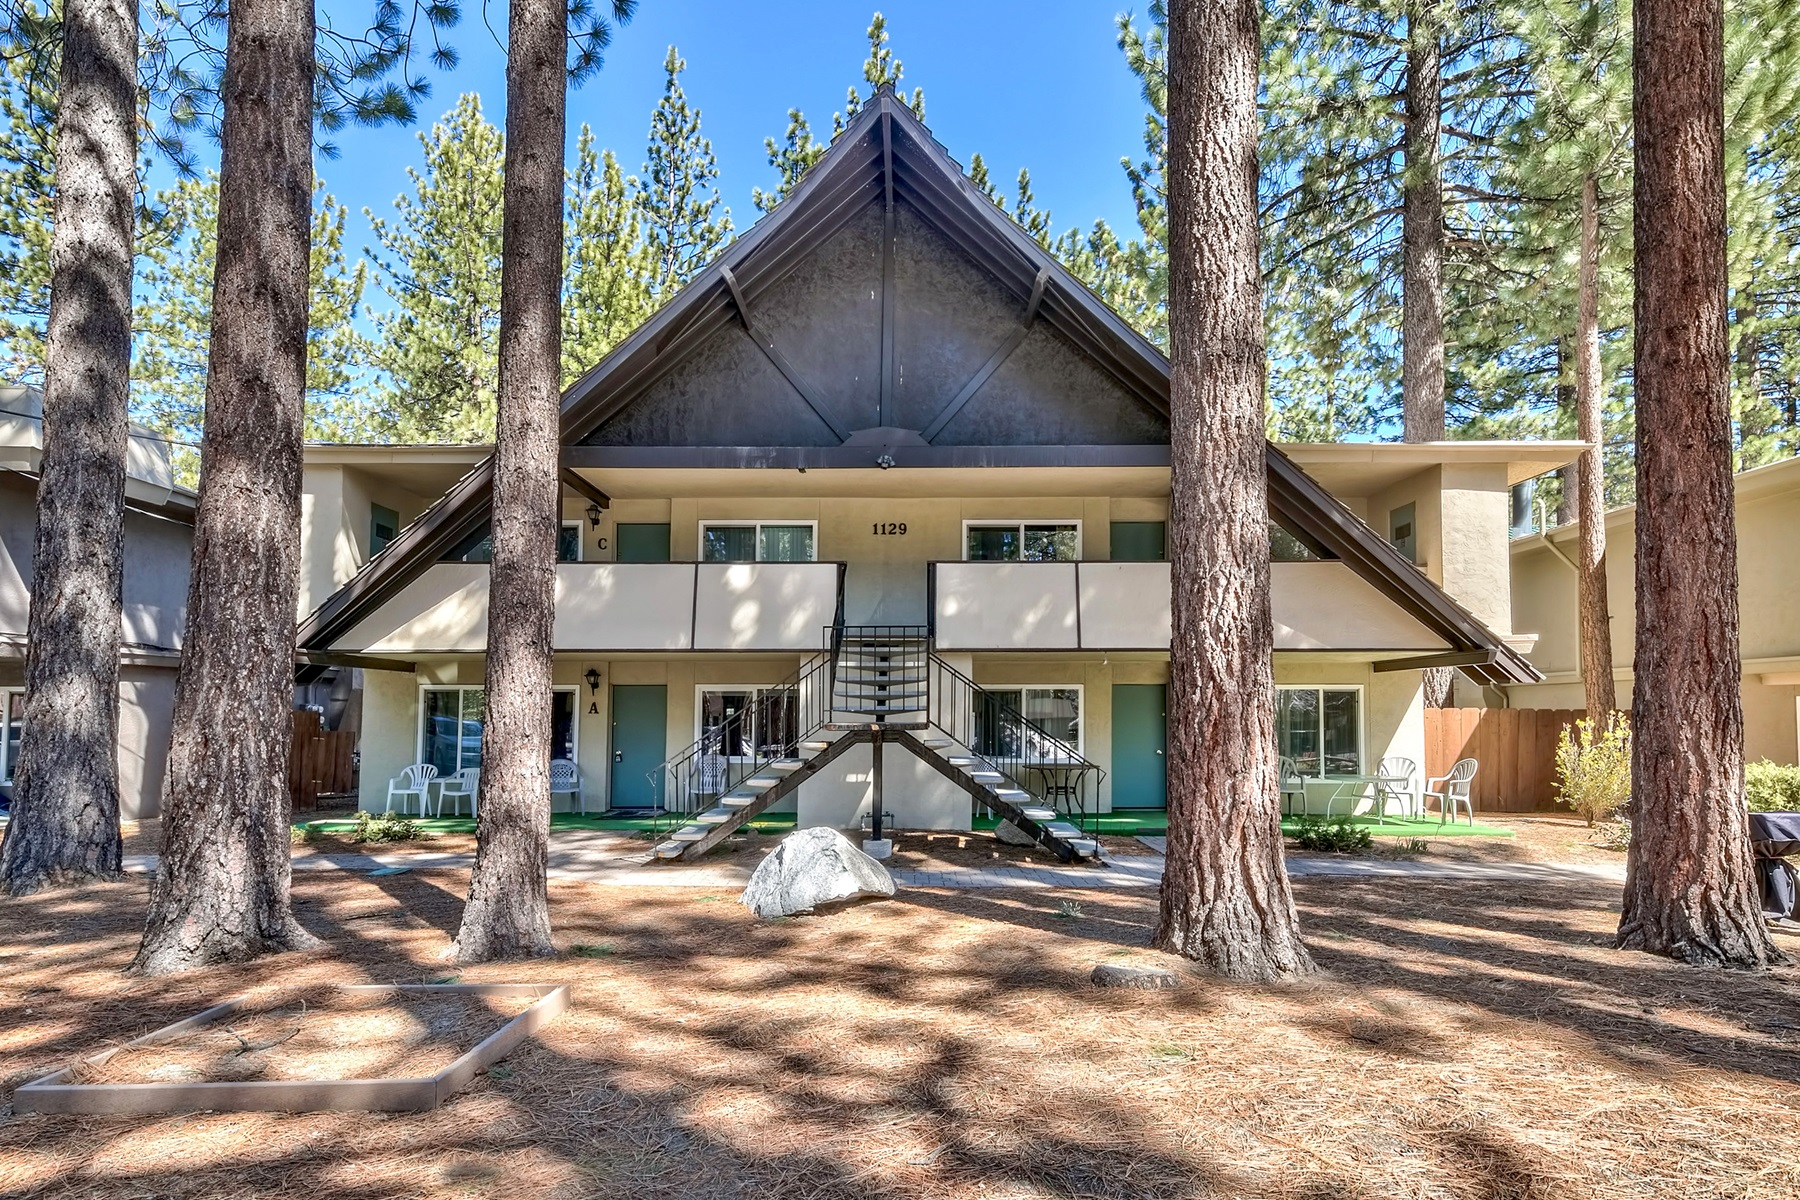 condominiums for Active at 1129 Herbert Avenue #A, South Lake Tahoe, CA 1129 Herbert Avenue #A South Lake Tahoe, California 96150 United States